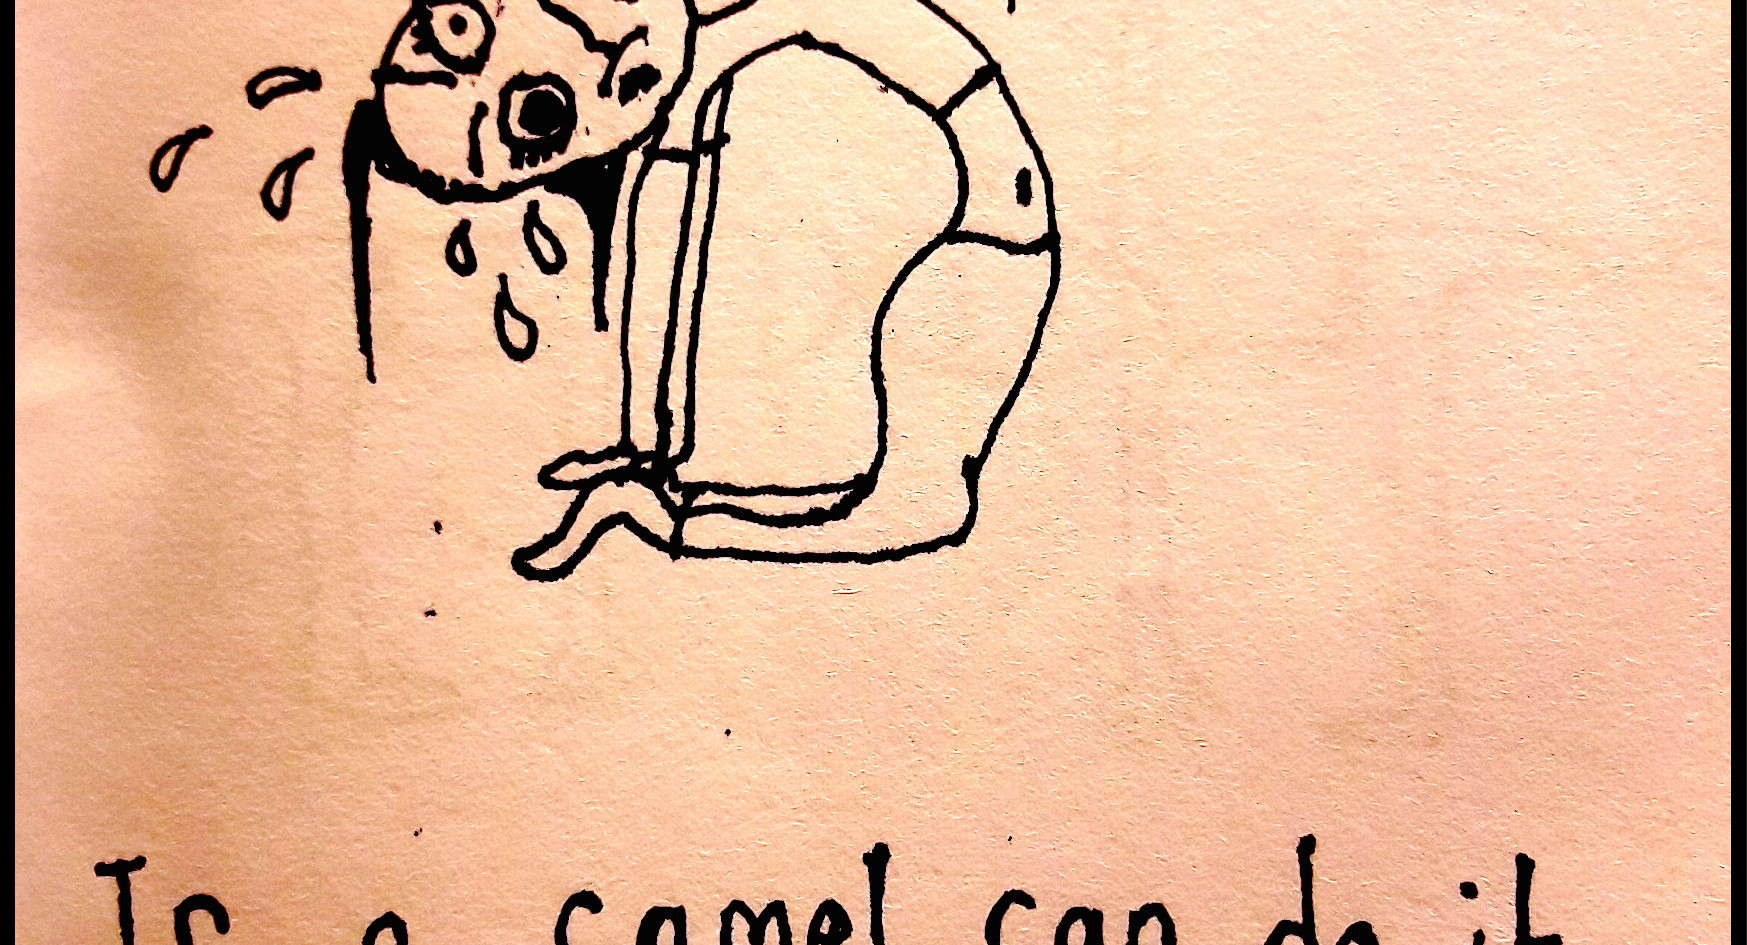 Camels can do it!